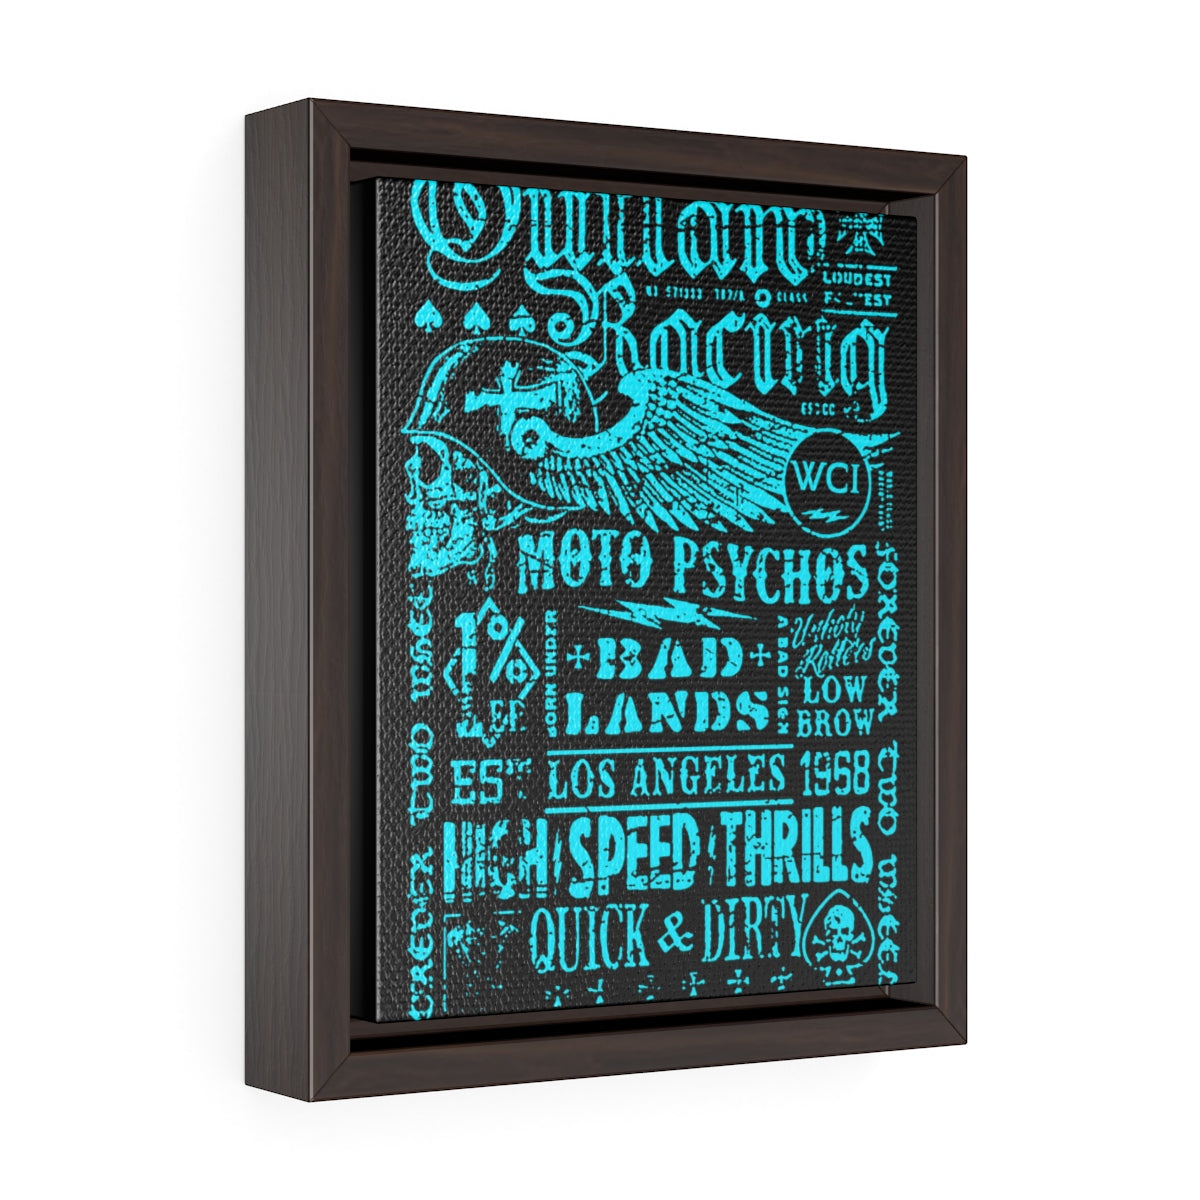 Outlaw Racing /Vertical FramedWrap Canvas